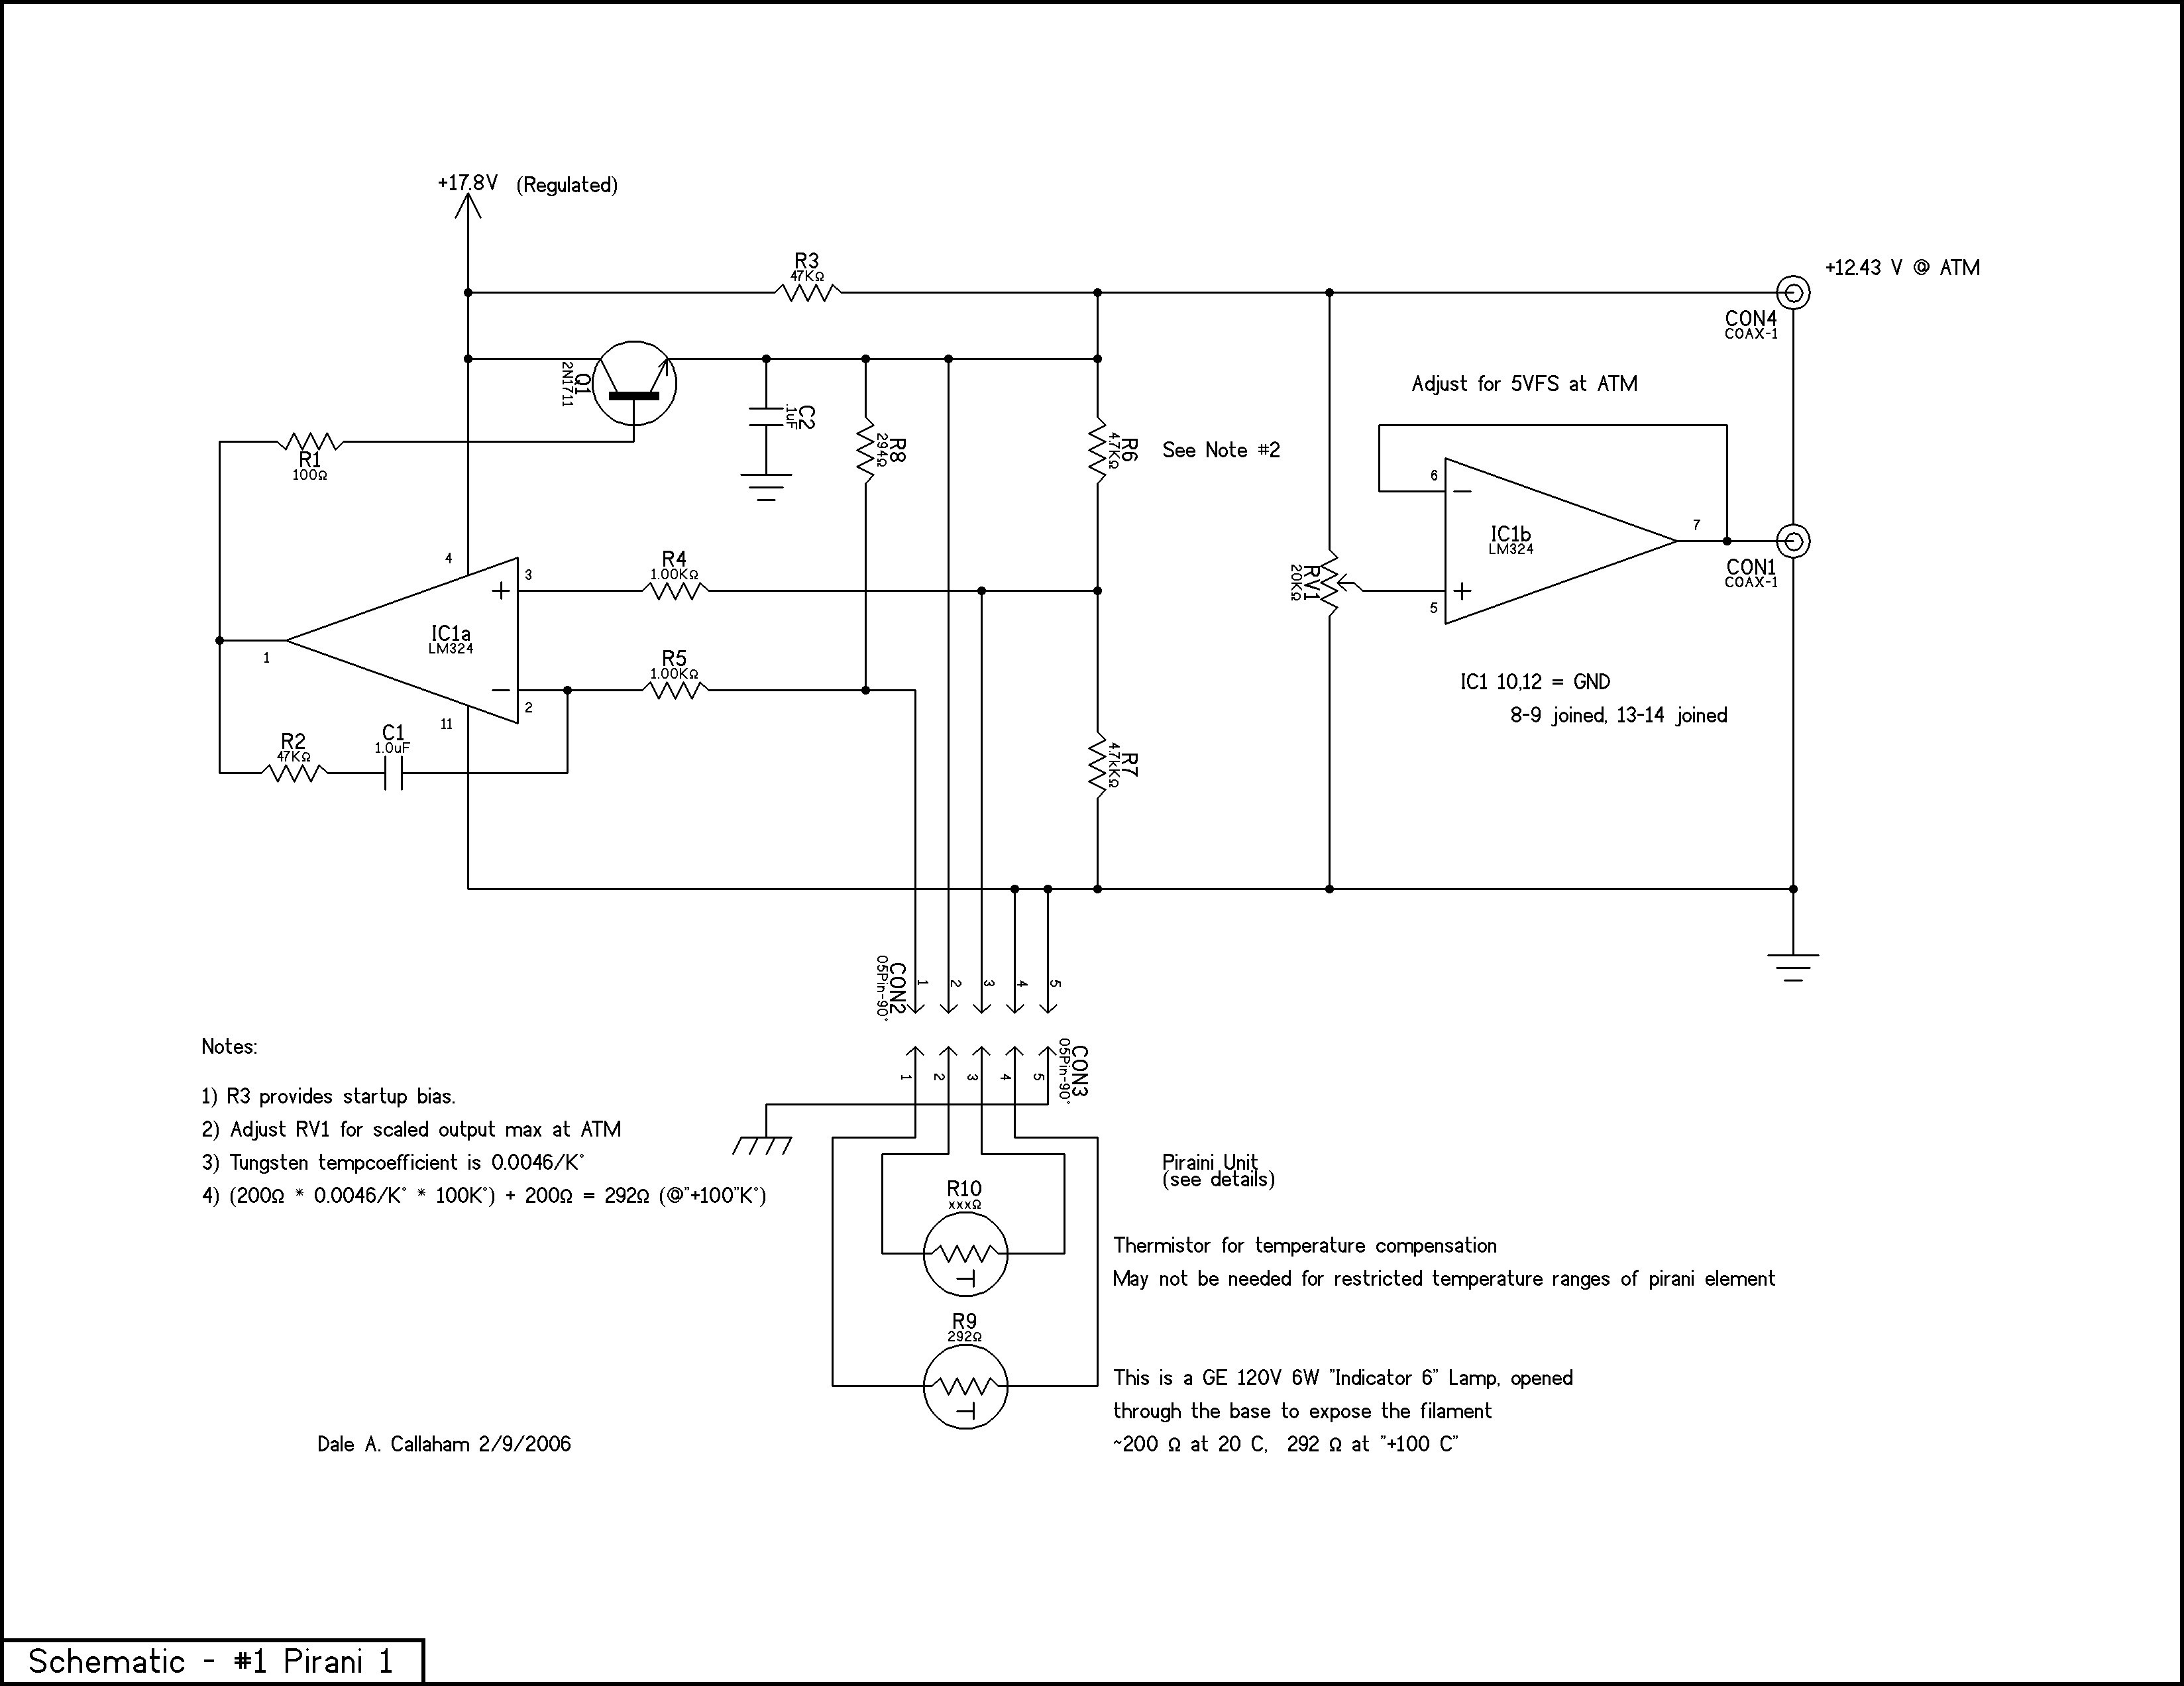 electrical wiring diagram house wiring diagram electrical wiring diagram house house wiring diagram electrical floor plan 2004 2010 bmw x3 e83 residential electrical wiring diagrams